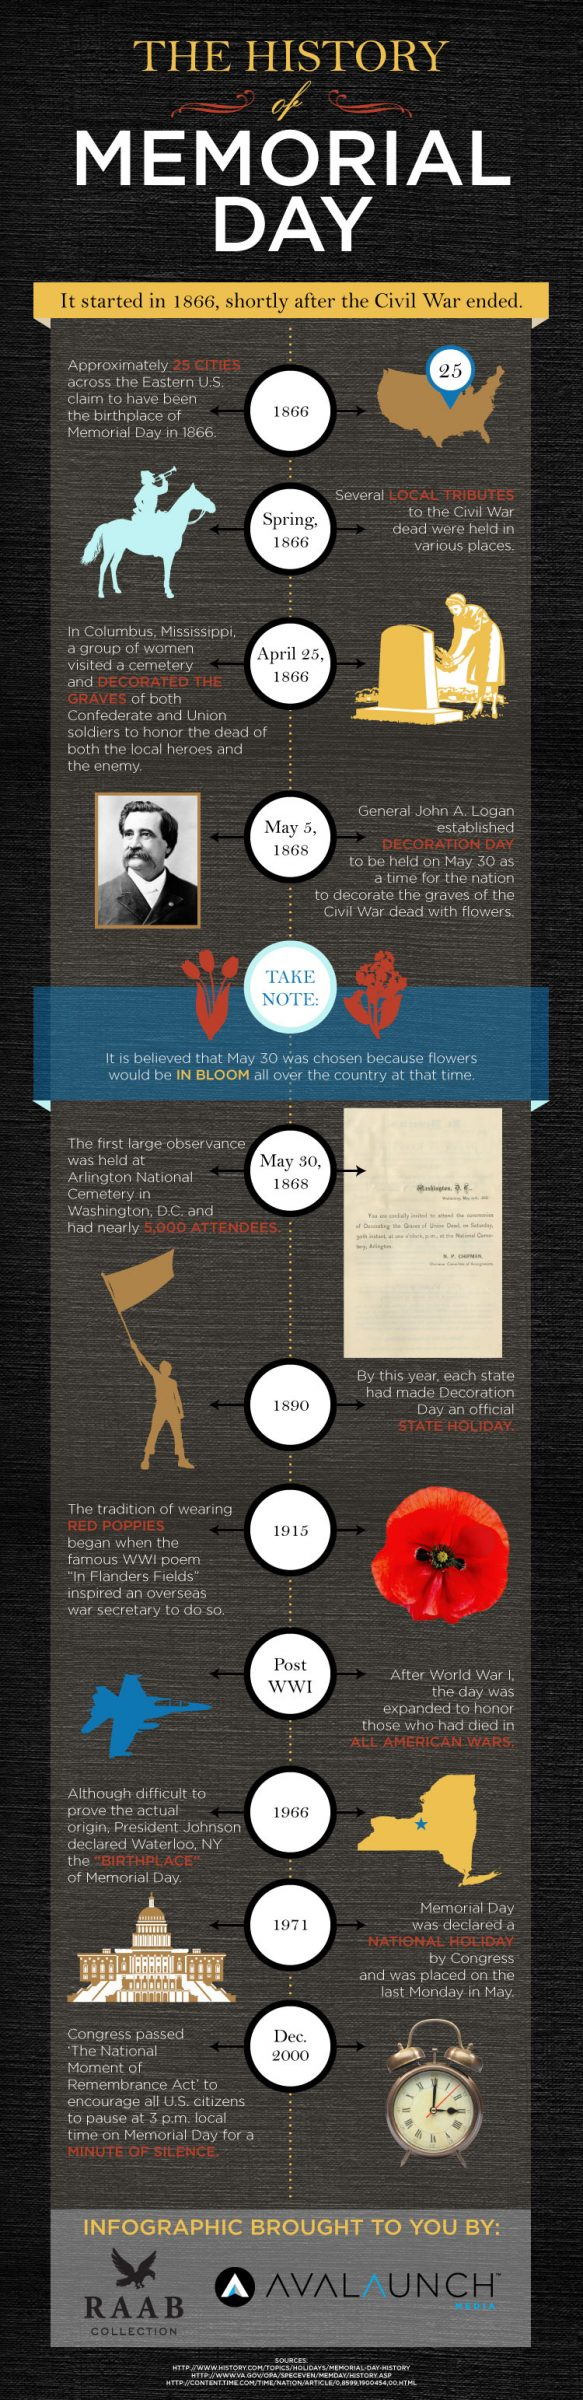 An infographic on the history of Memorial Day